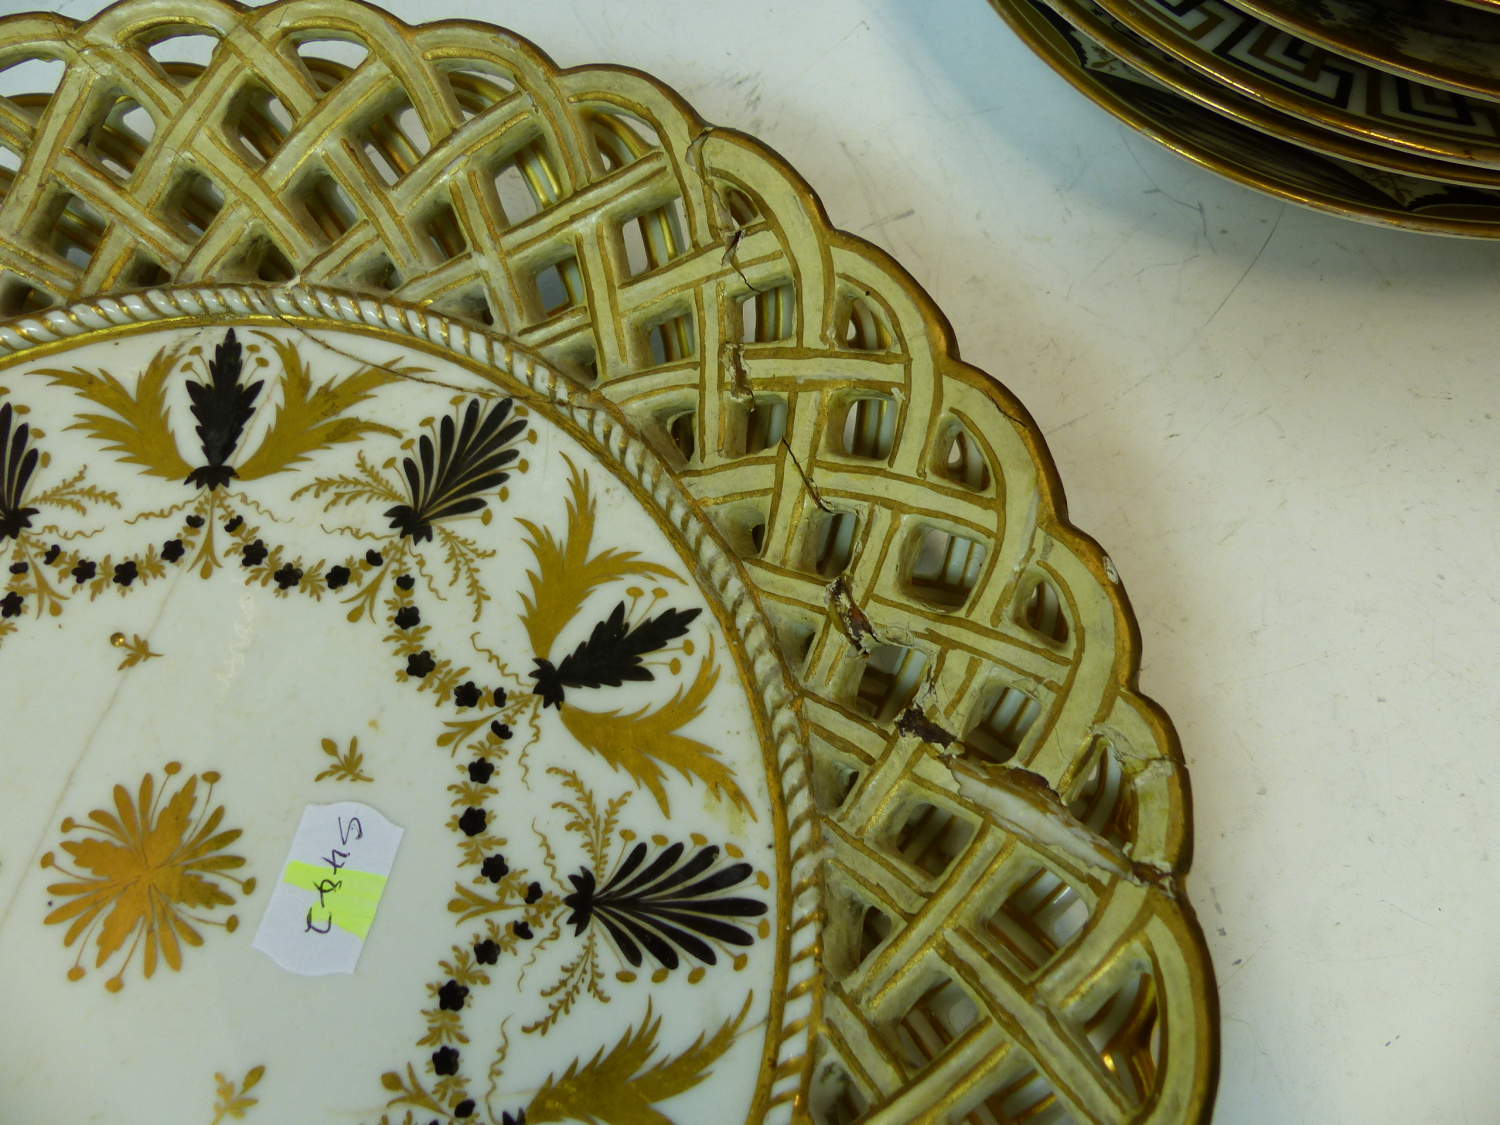 Lot 1709 - A COLLECTION OF PARIS PORCELAIN NEOCLASSICAL GILT AND BLACK DECORATED WARES TO INCLUDE A PAIR OF